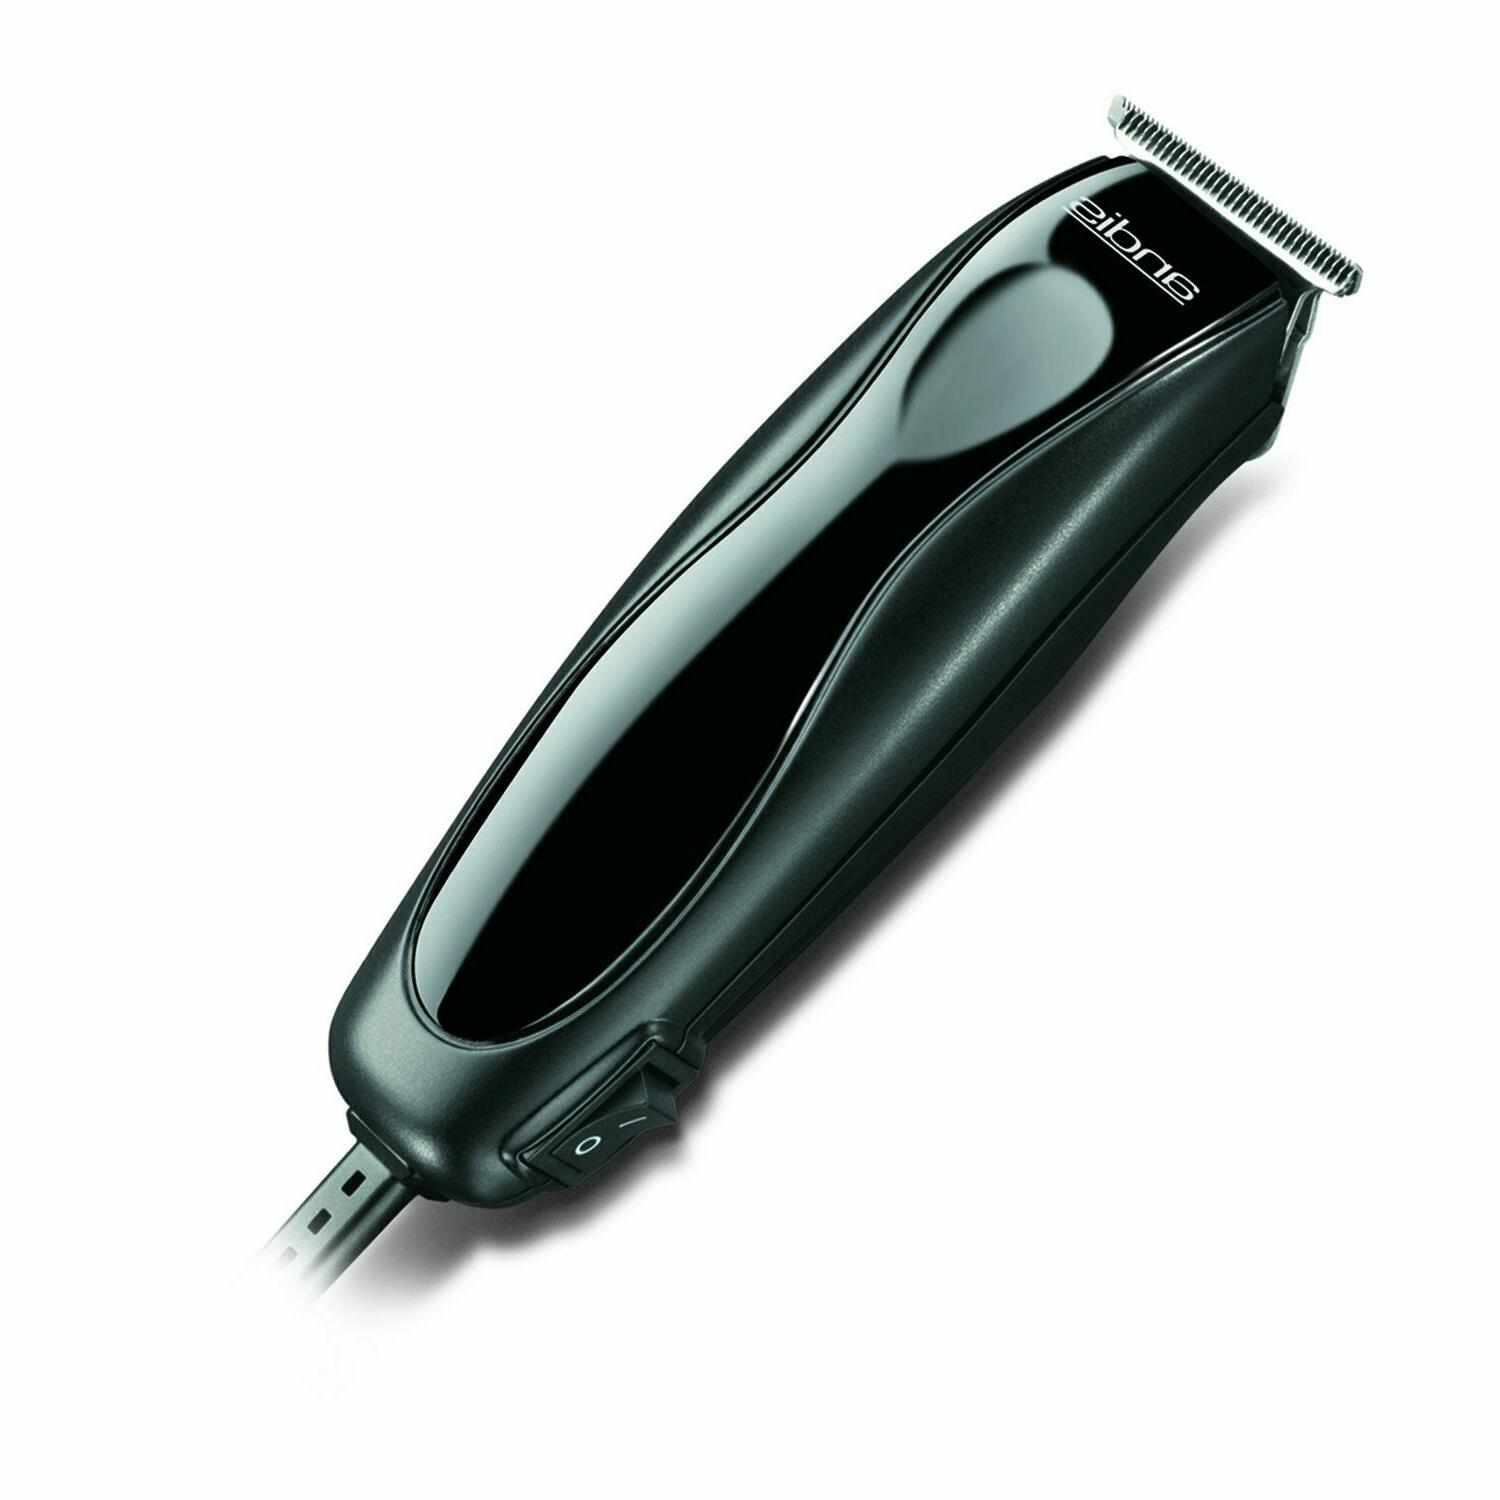 Andis T Outliner Professional Trimmer Salon Cut Clippers Grooming